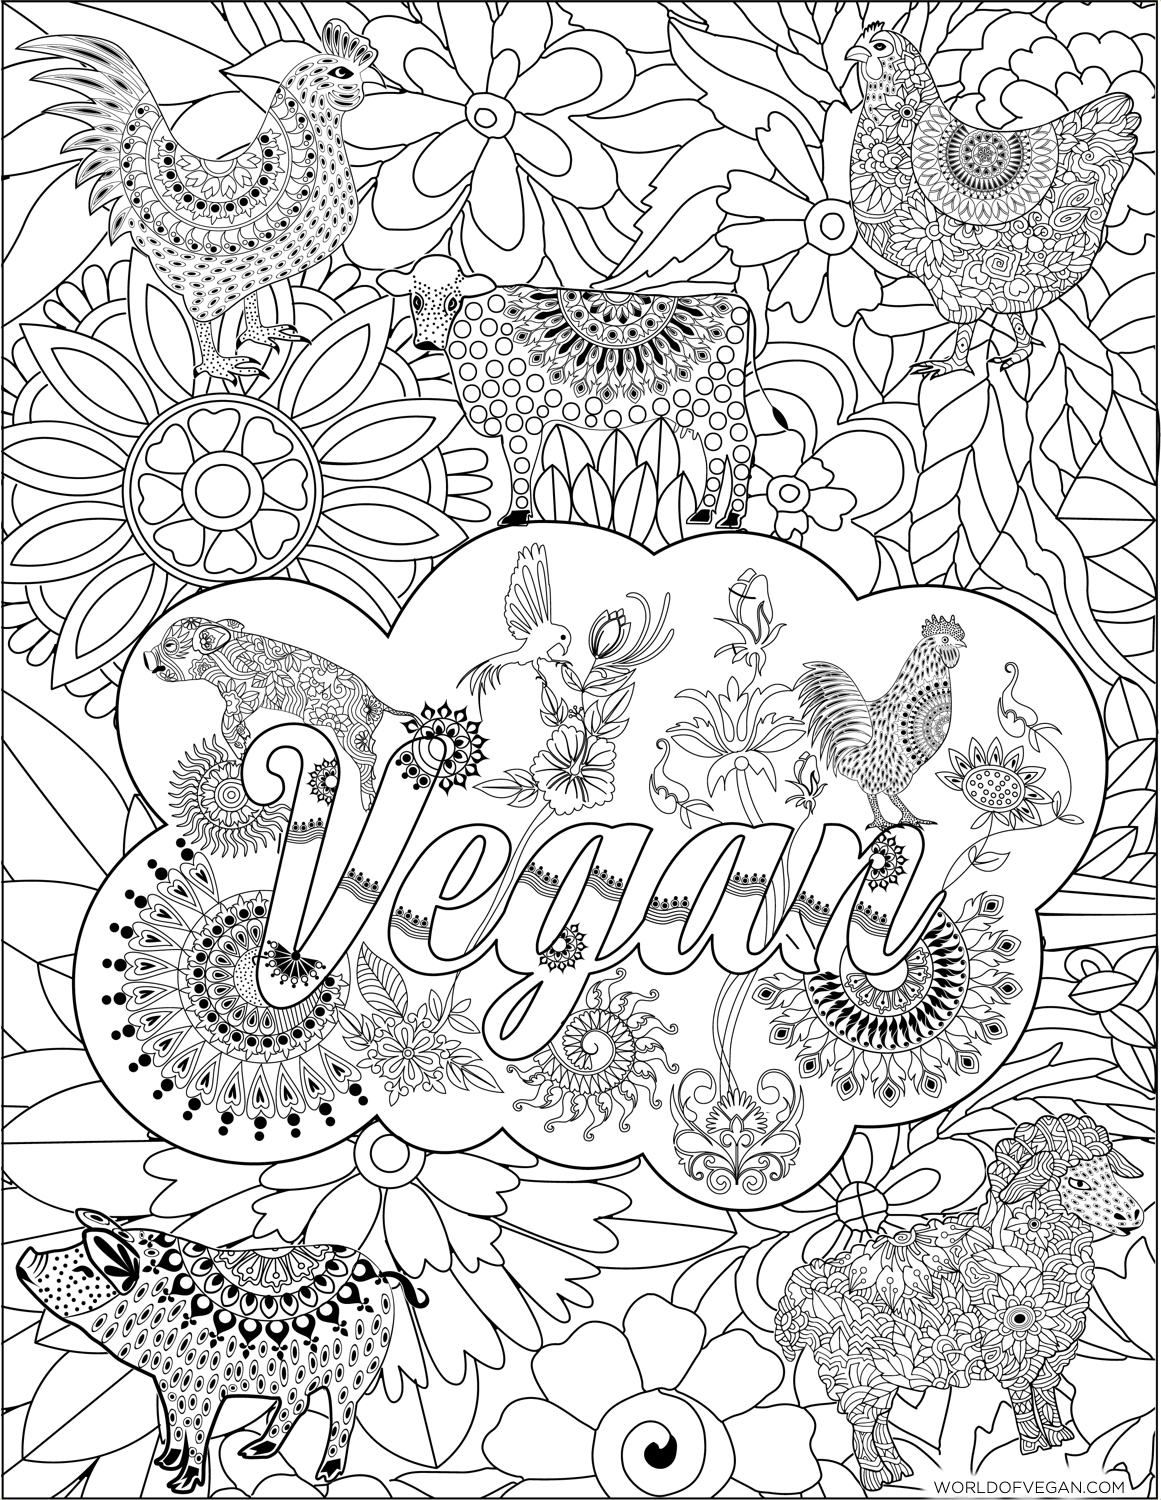 Vegan Zentangle | Printer-Friendly Adult Coloring Book | WorldofVegan.com #vegan #art #zentangle #mandala